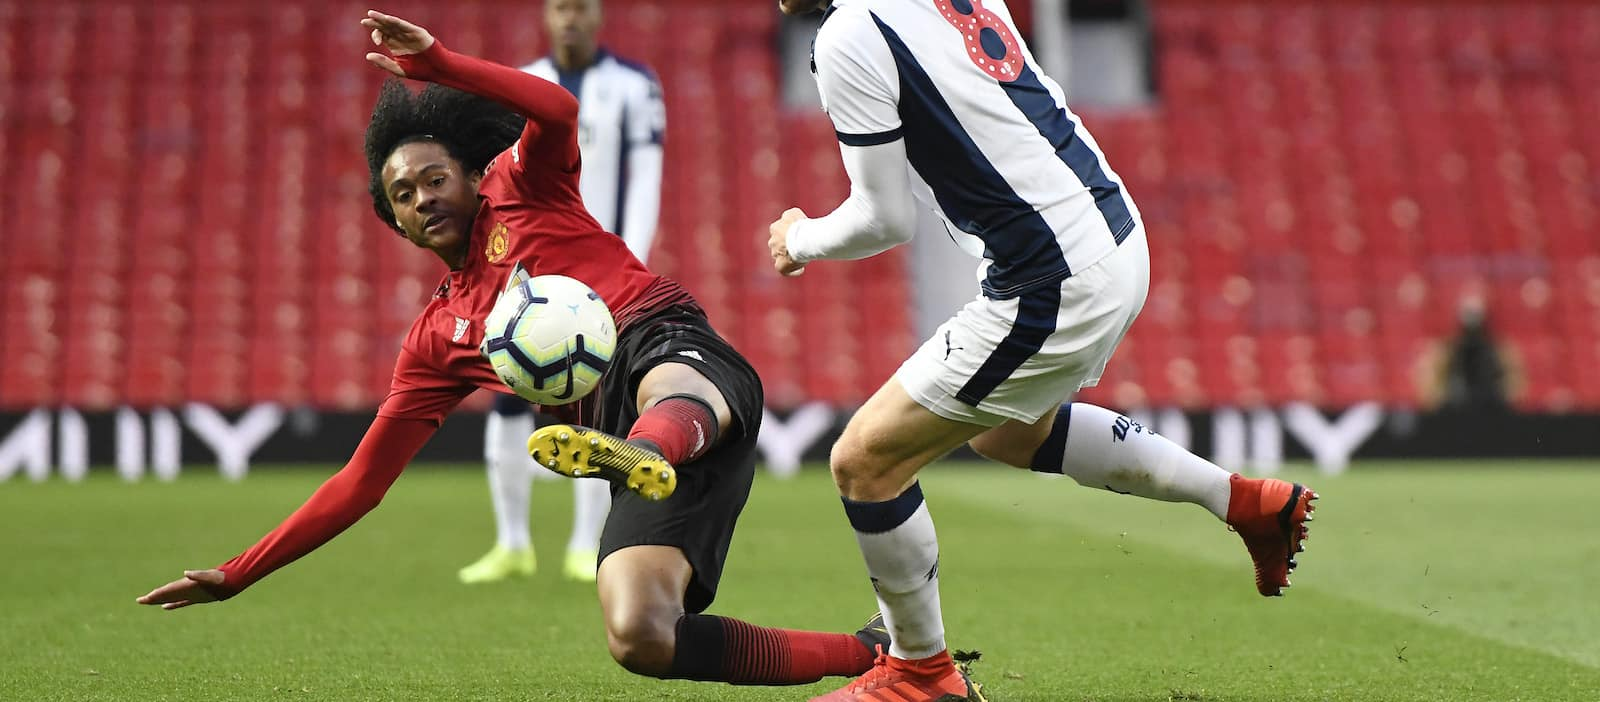 Werder Bremen confirm talks over Tahith Chong loan deal